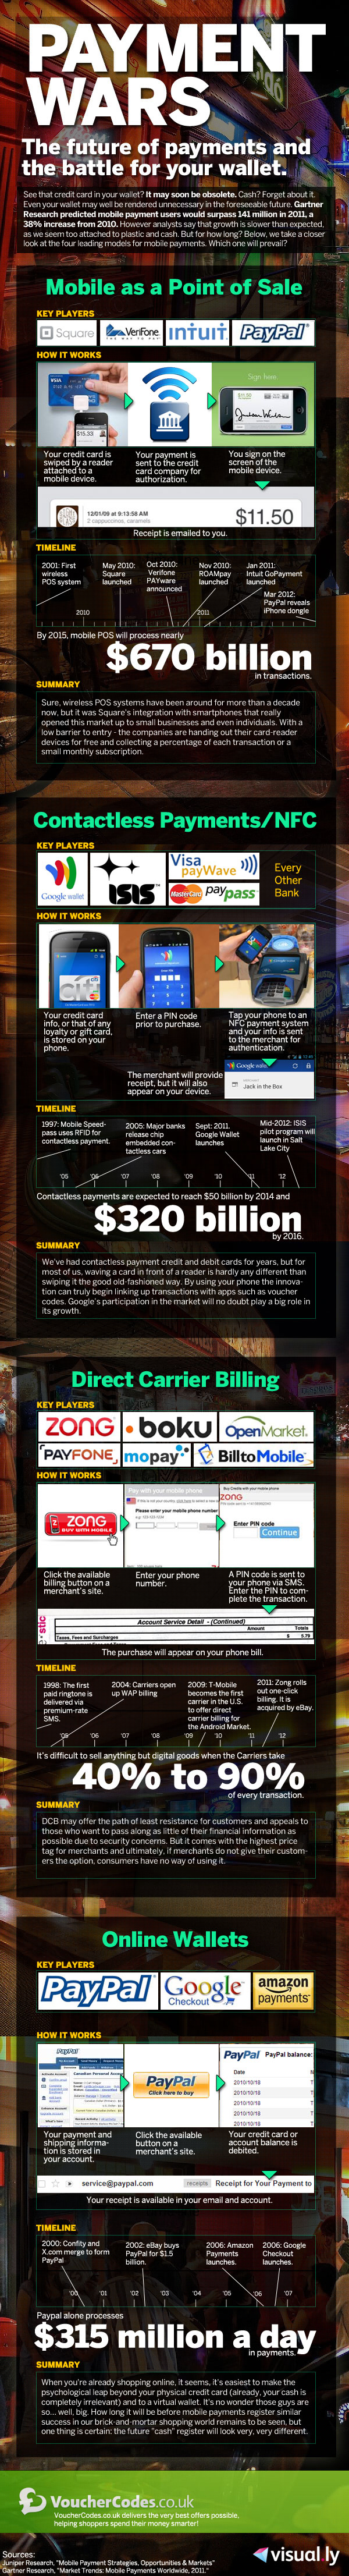 Infographic from Visual.ly showing a variety of facts about mobile payments